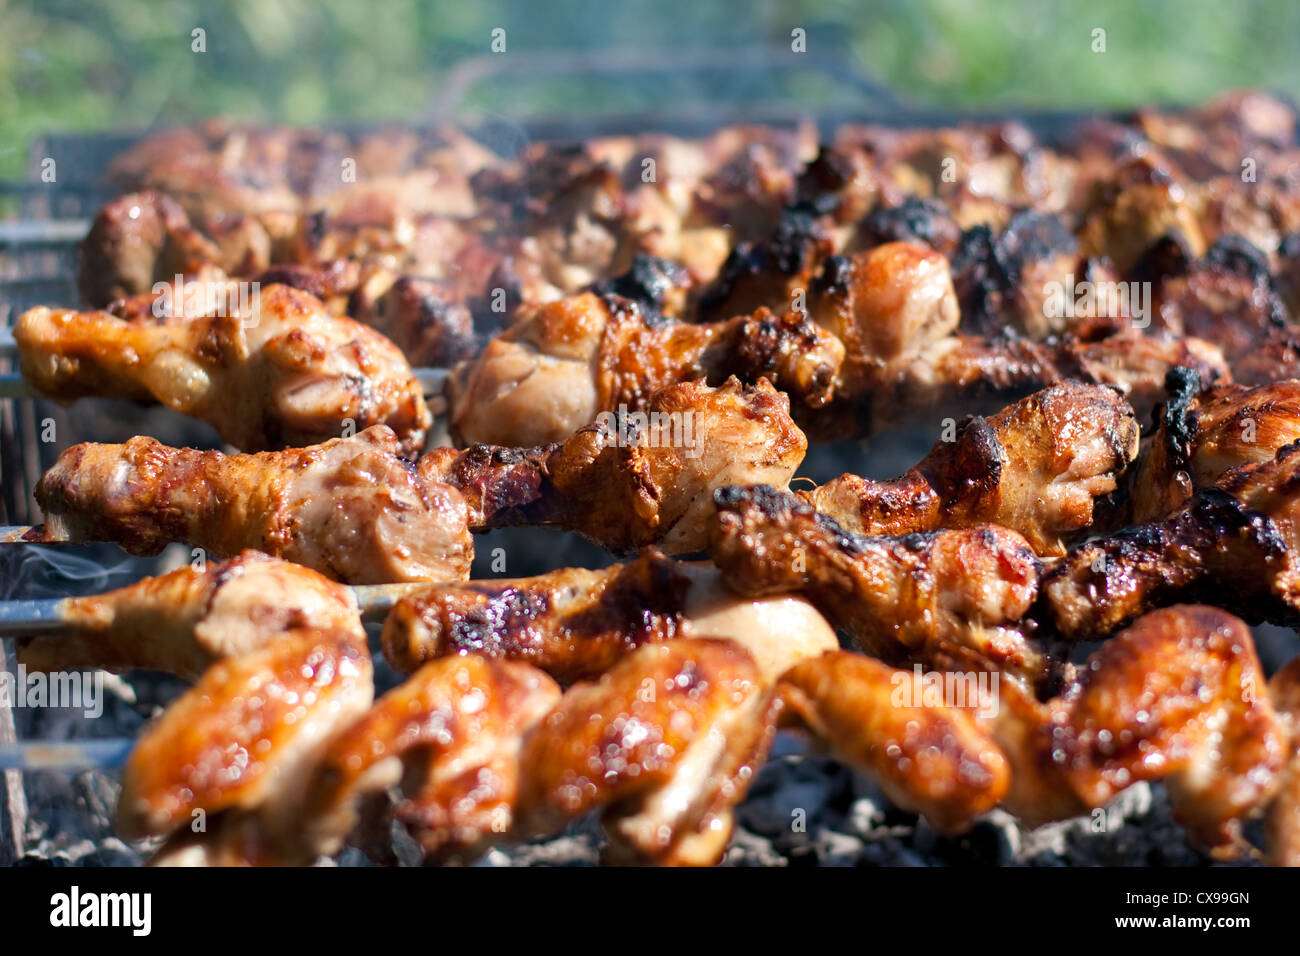 barbecue or fried chicken and pork meat - Stock Image